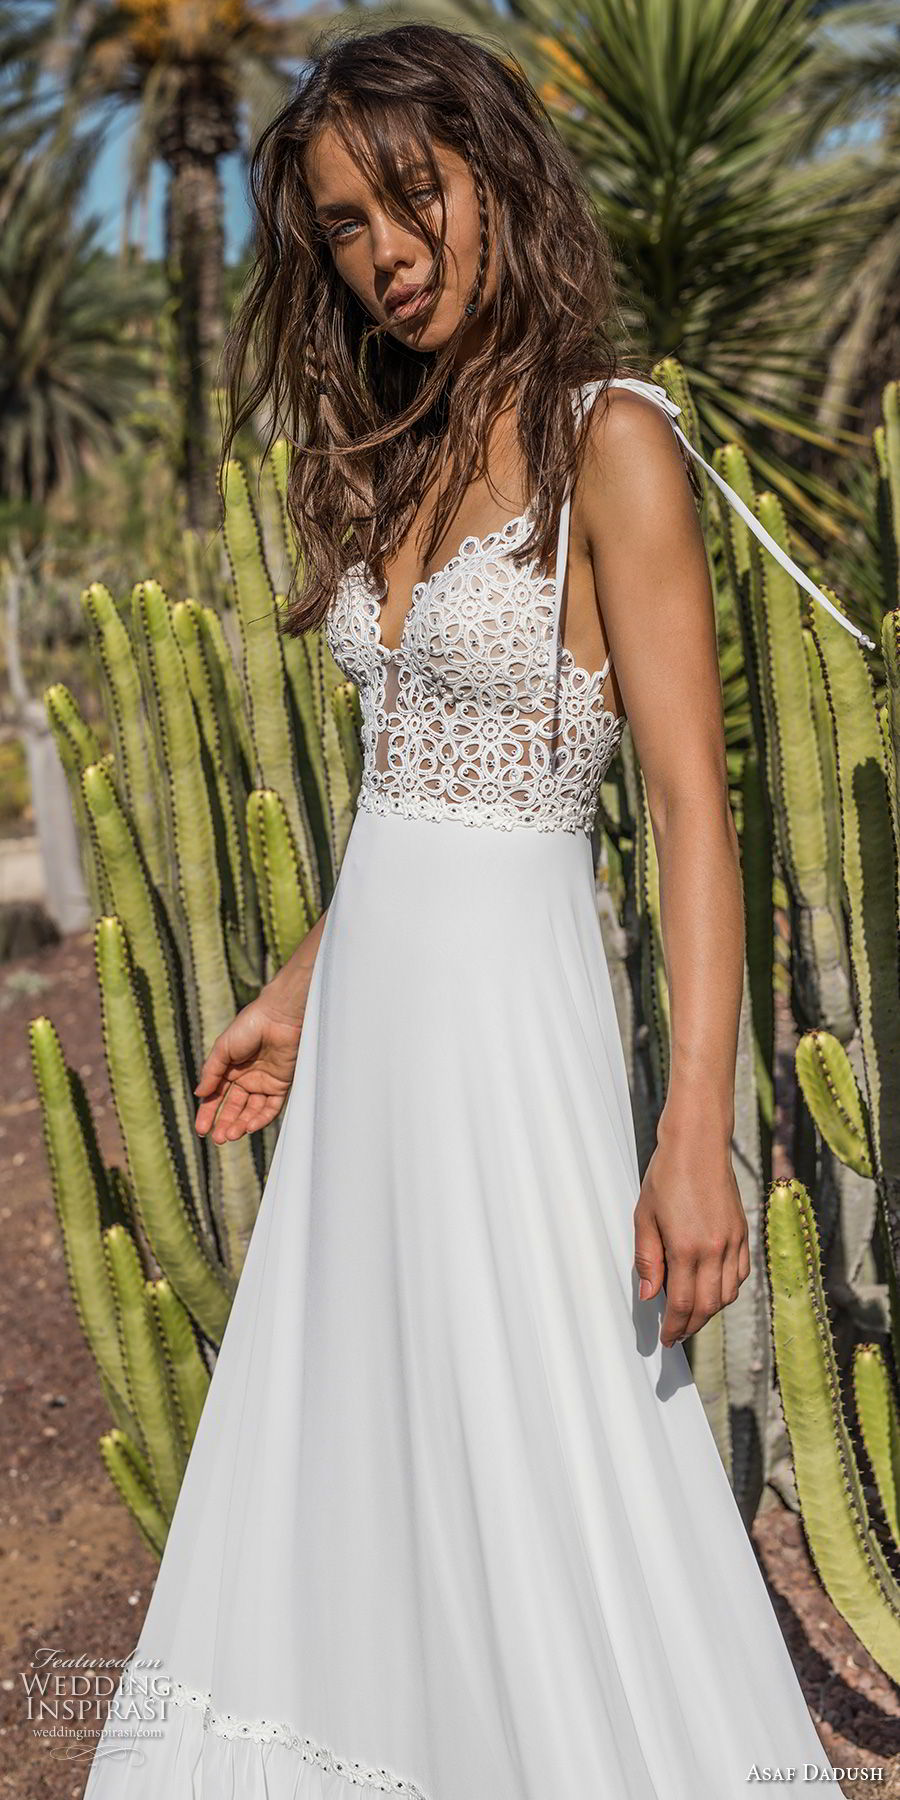 asaf dadush 2018 bridal sleeveless spaghetti strap deep plunging sweetheart neckline heavily embellished bodice bohemian a line wedding dress open back sweep train (8) zv